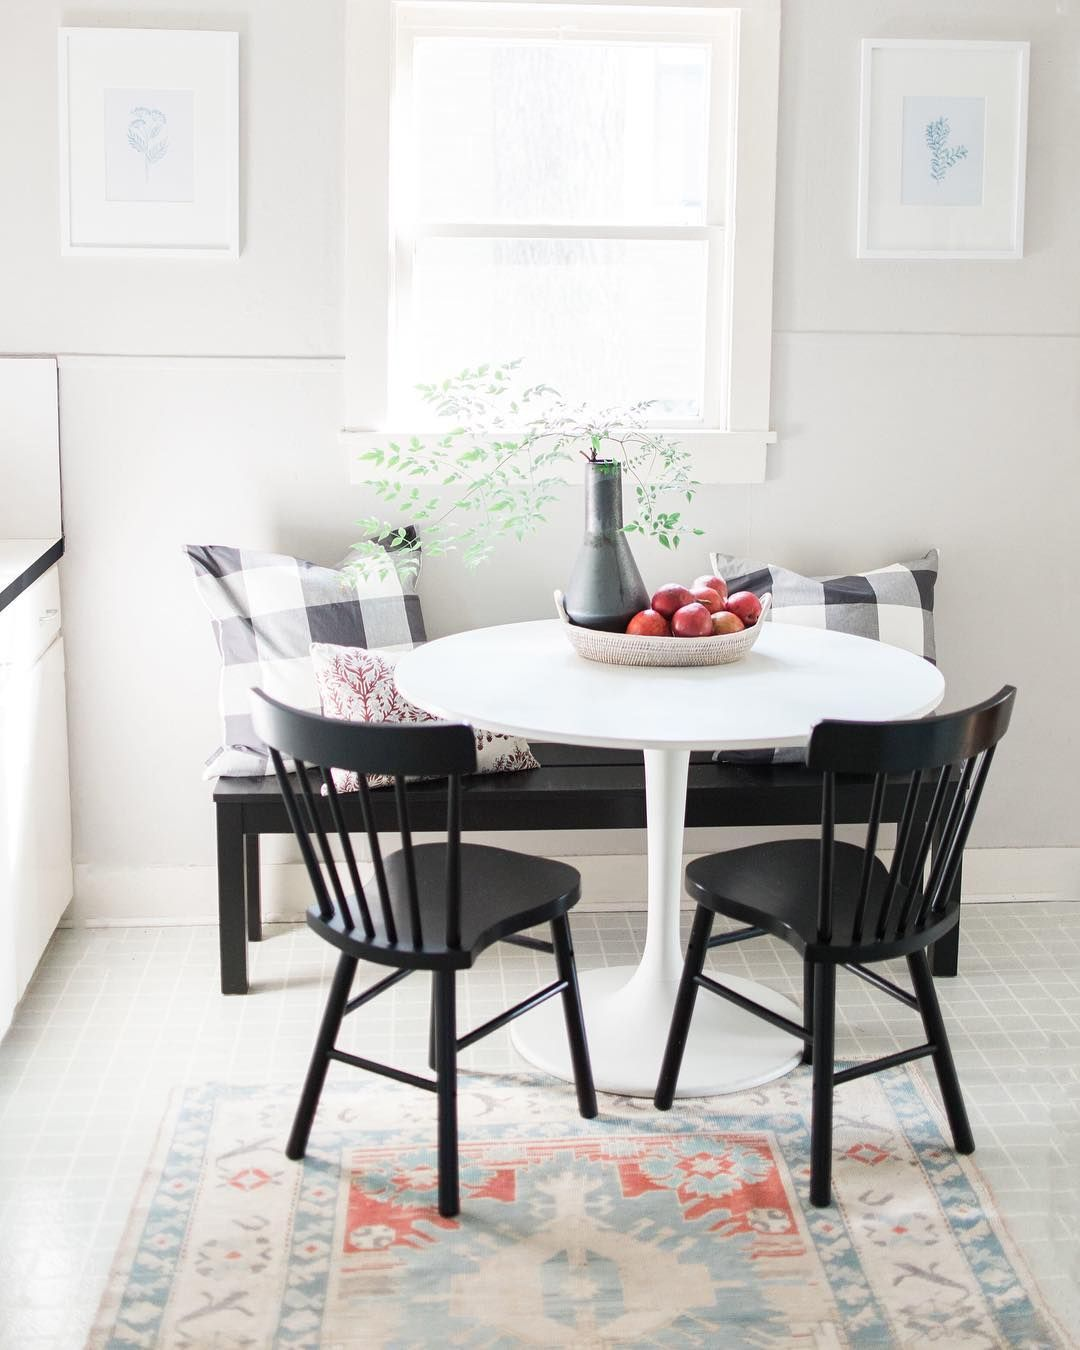 Dining Nook In A Rental Kitchen With White Tulip Table